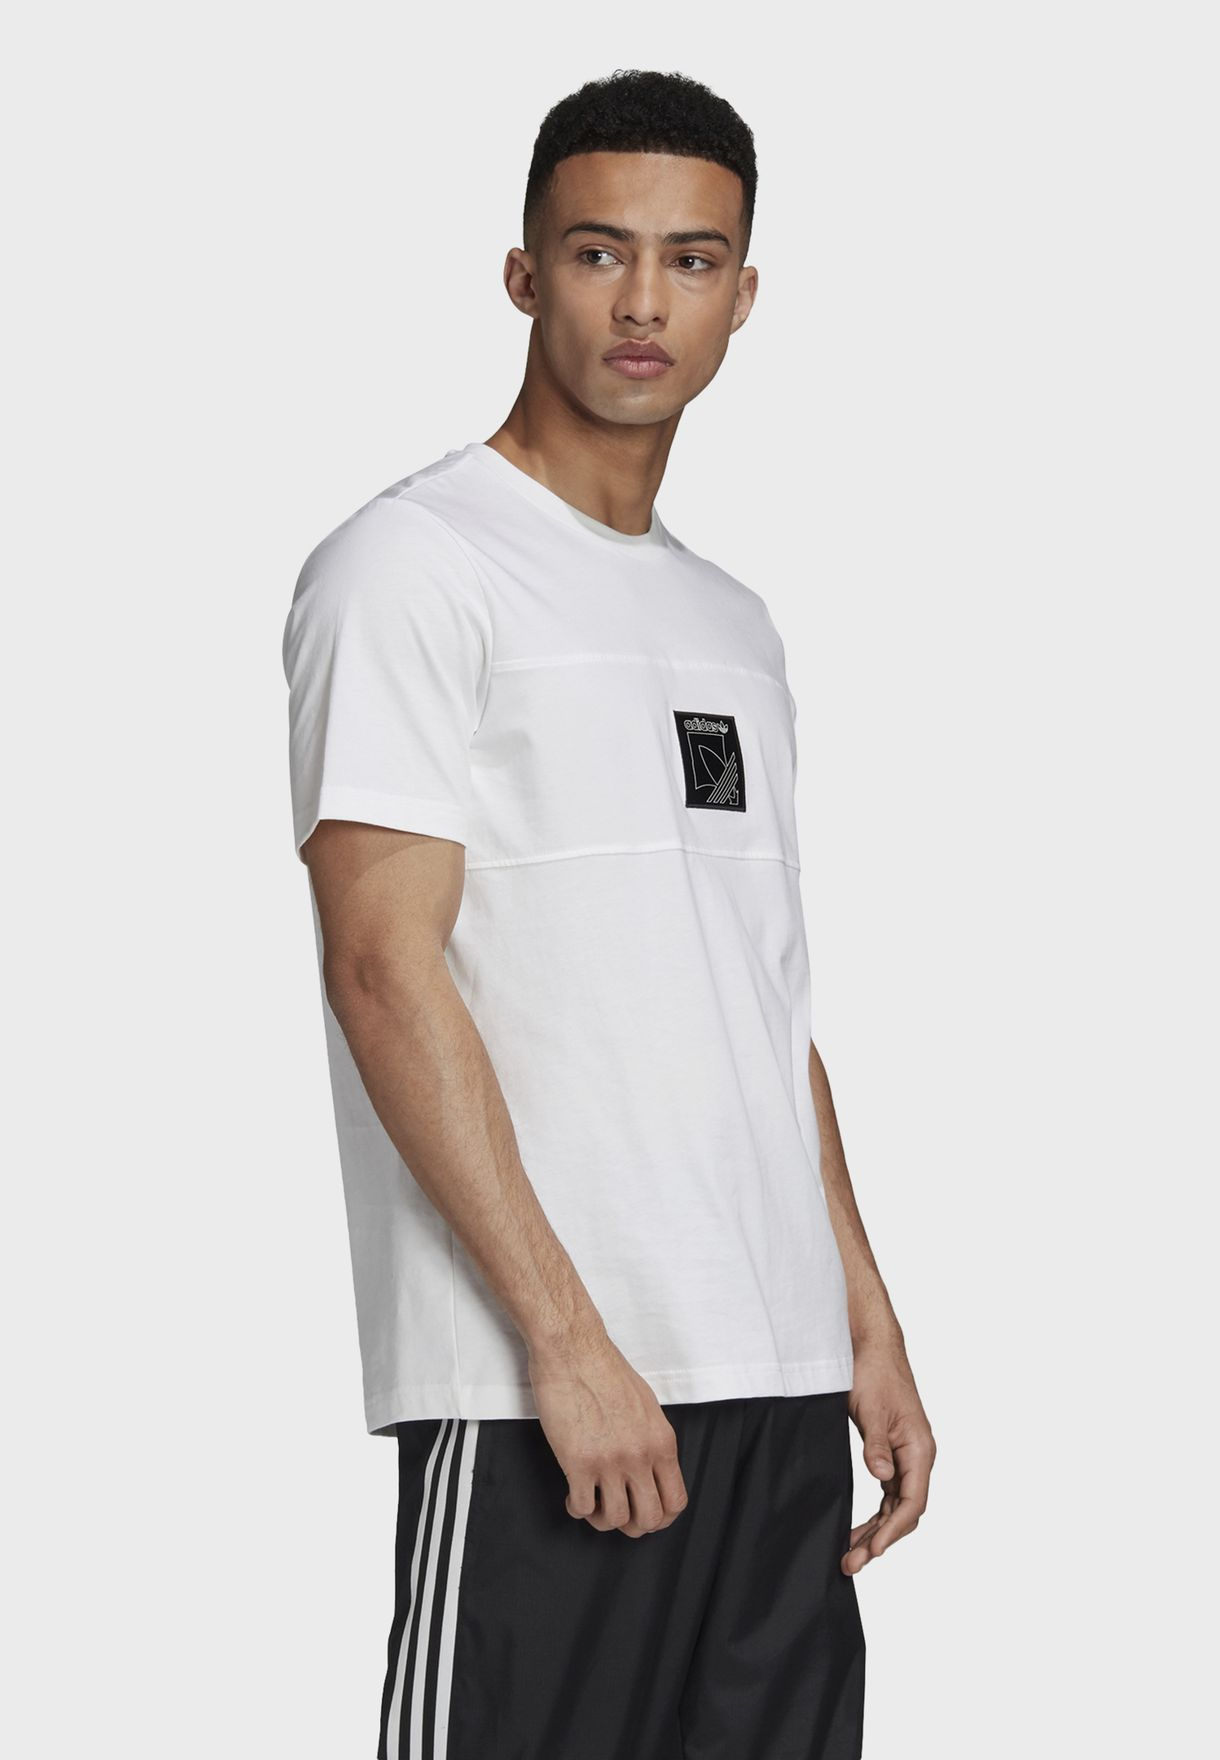 Icon Tee Sprt Collection Casual Men's T-Shirt